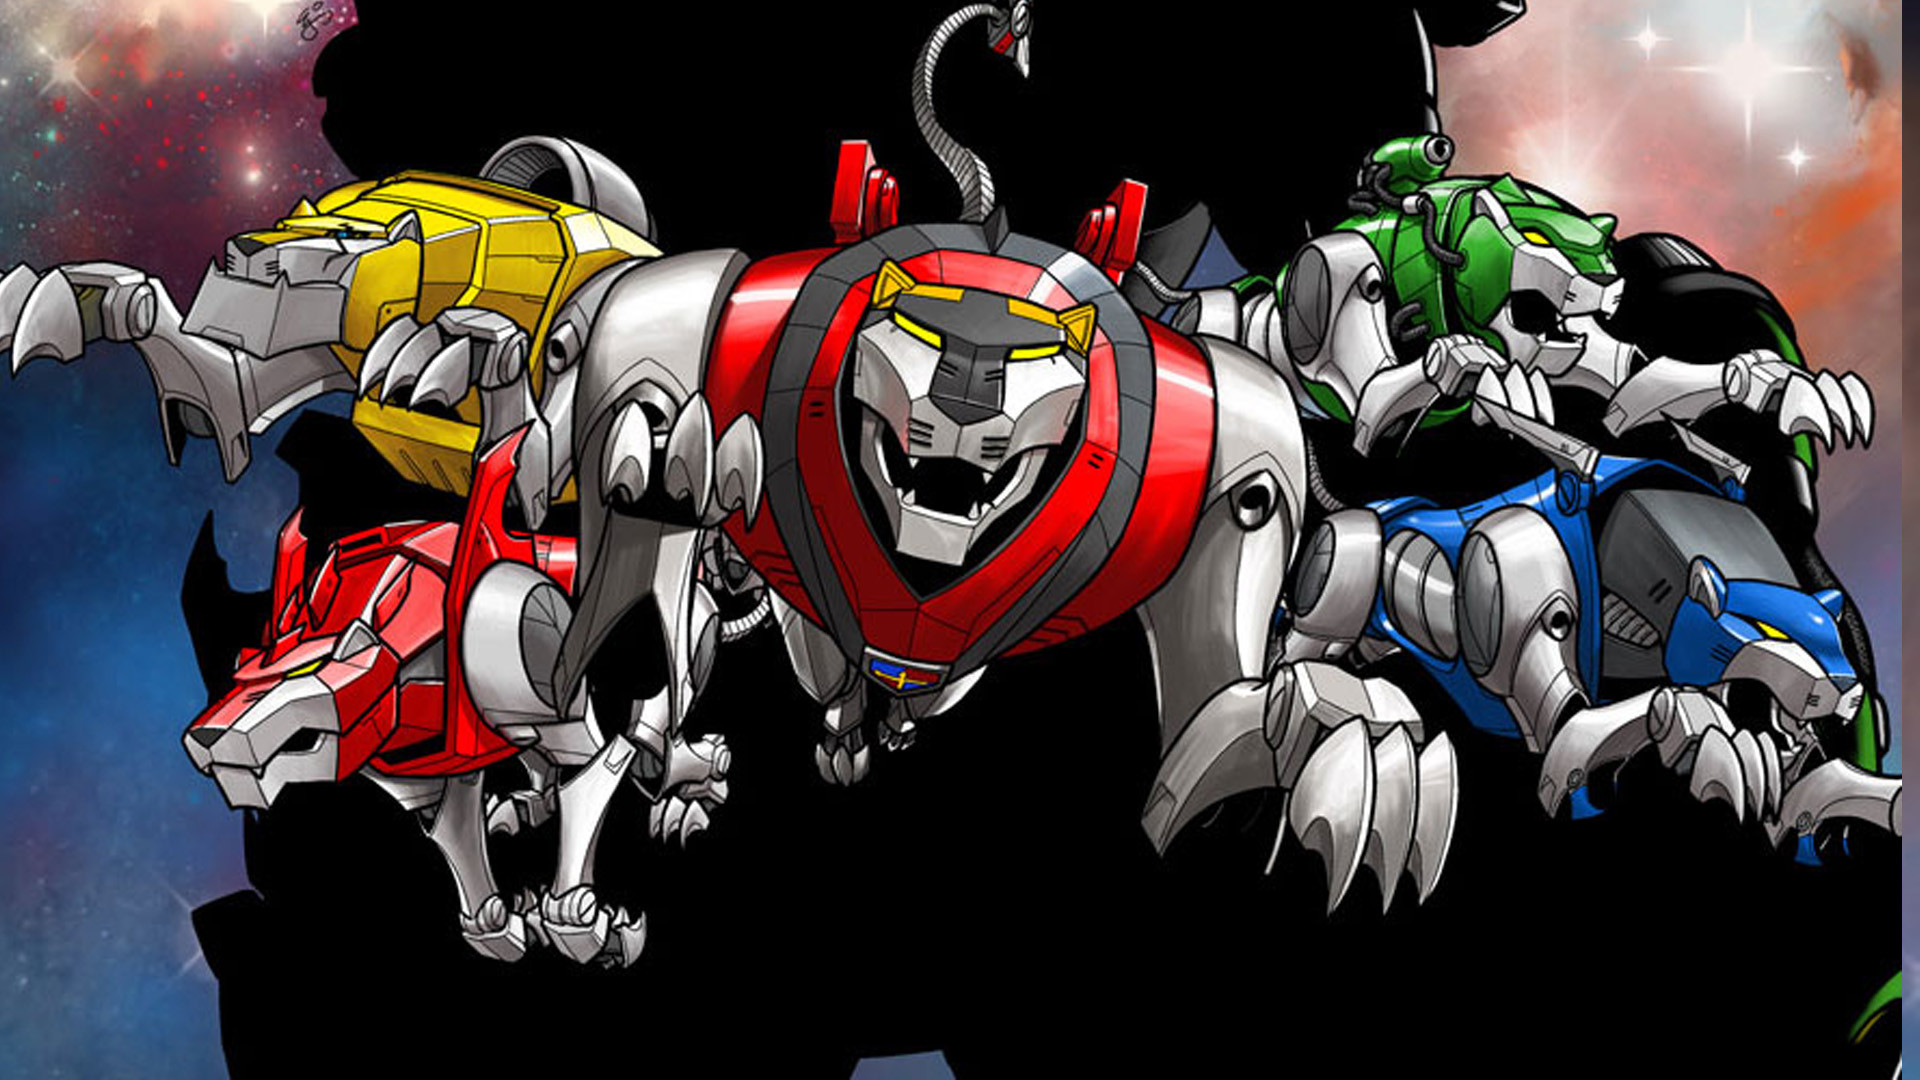 1920x1080 Voltron force wallpapers - zatch bell mamodo battles wallpapers and  screensavers